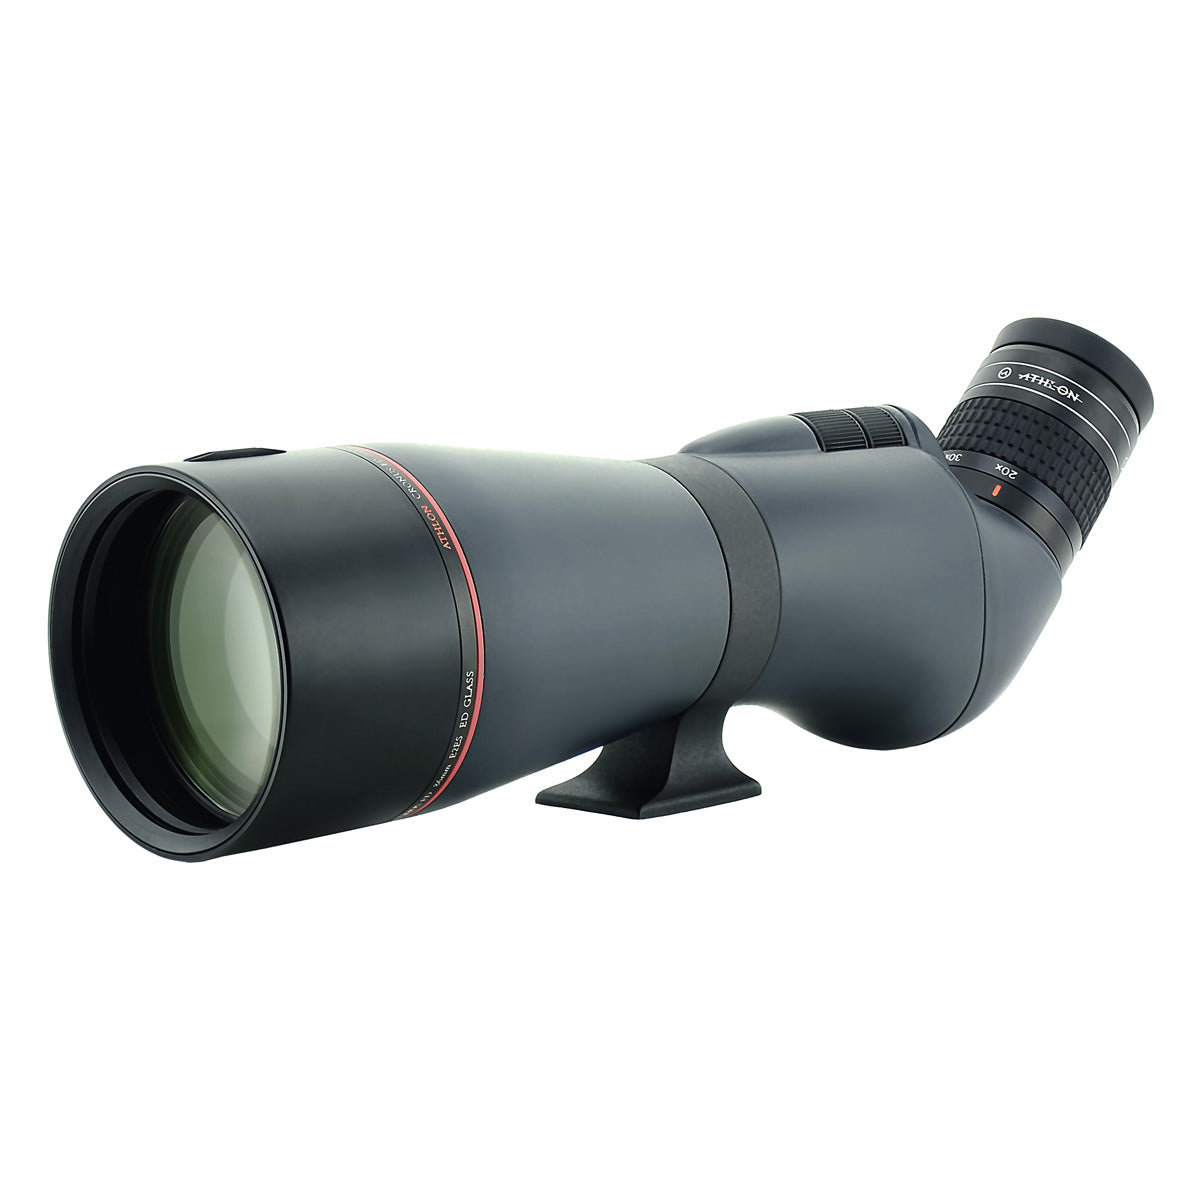 Athlon Optics Cronus 20-60×86mm UHD Spotting Scope